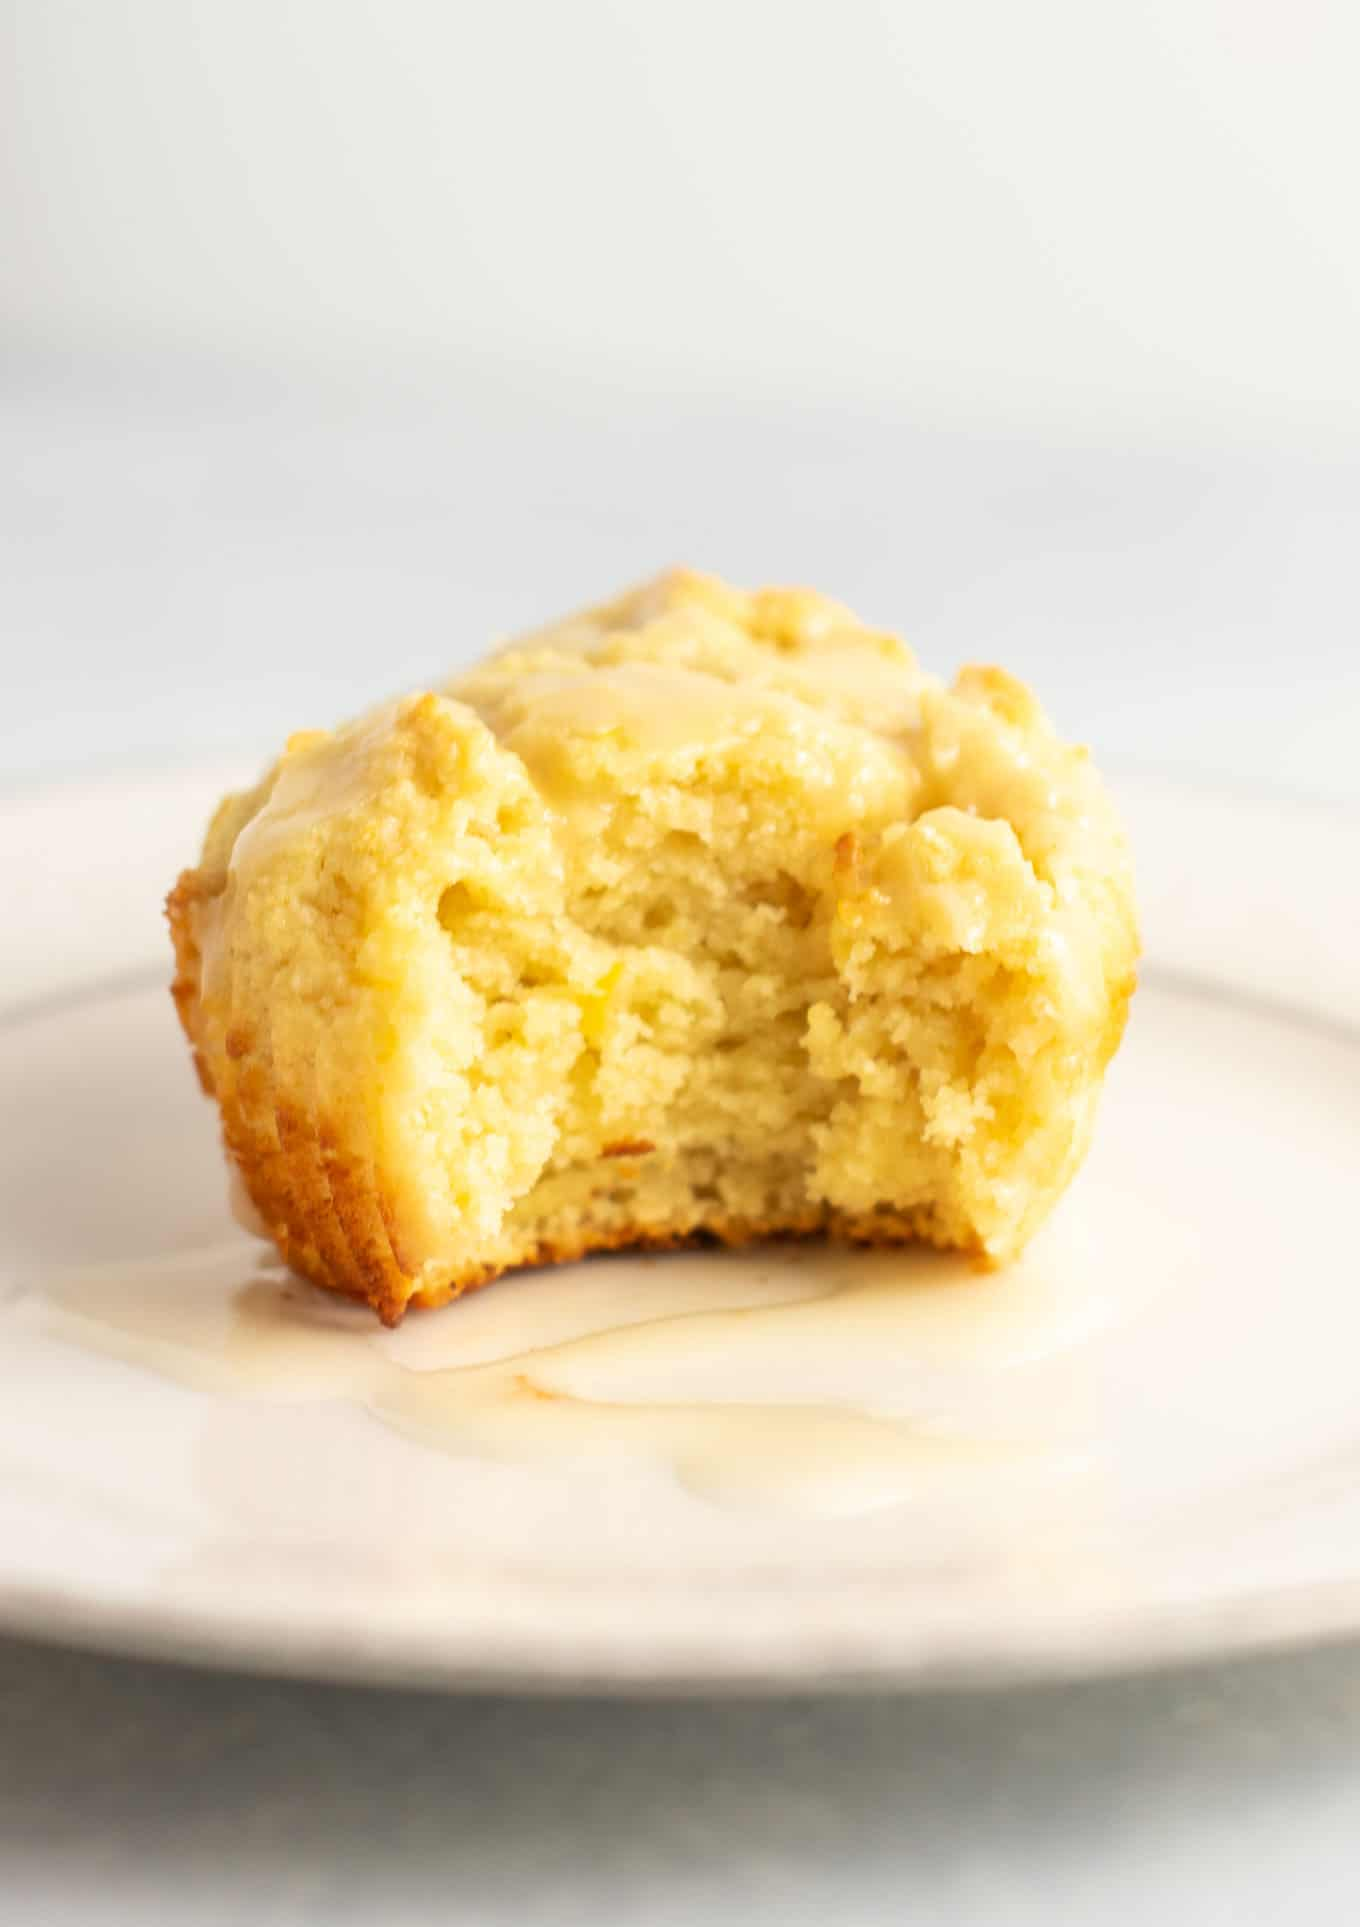 lemon muffins with a sweet lemon glaze. These are perfectly fluffy, do not fall apart, and taste amazing! #glutenfree #lemonmuffins #breakfast